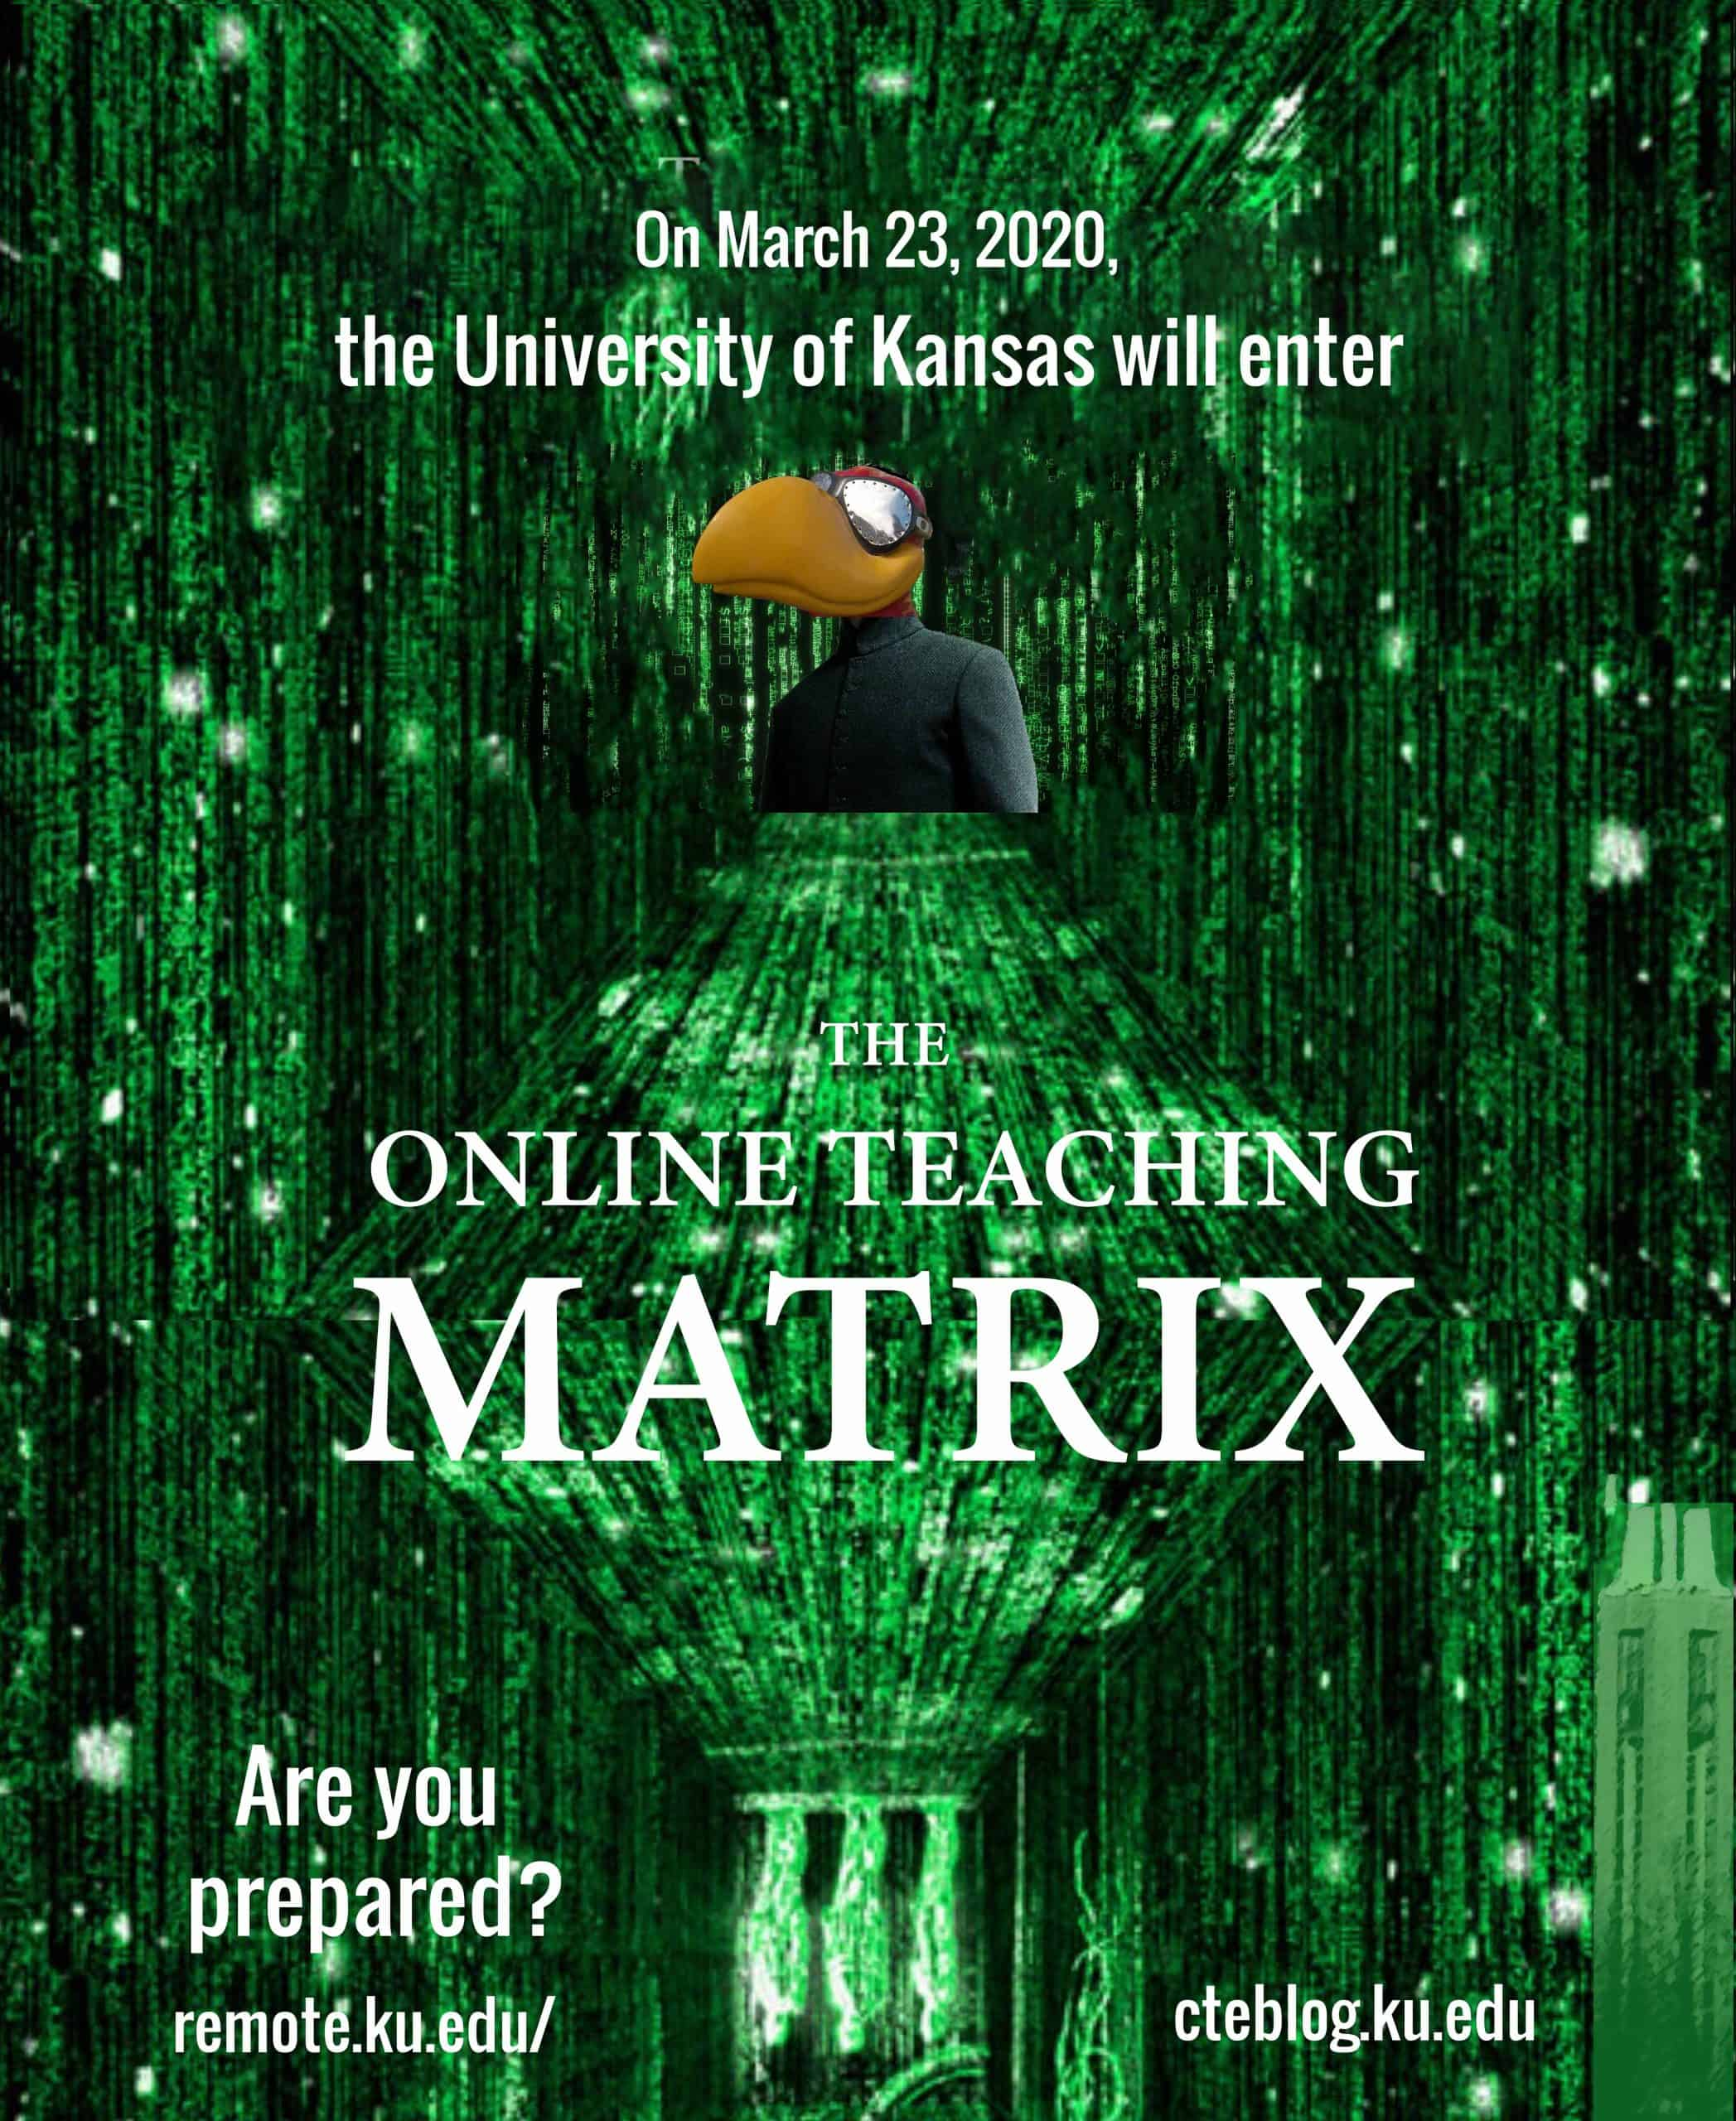 satiric movie poster imitation called the online teaching matrix